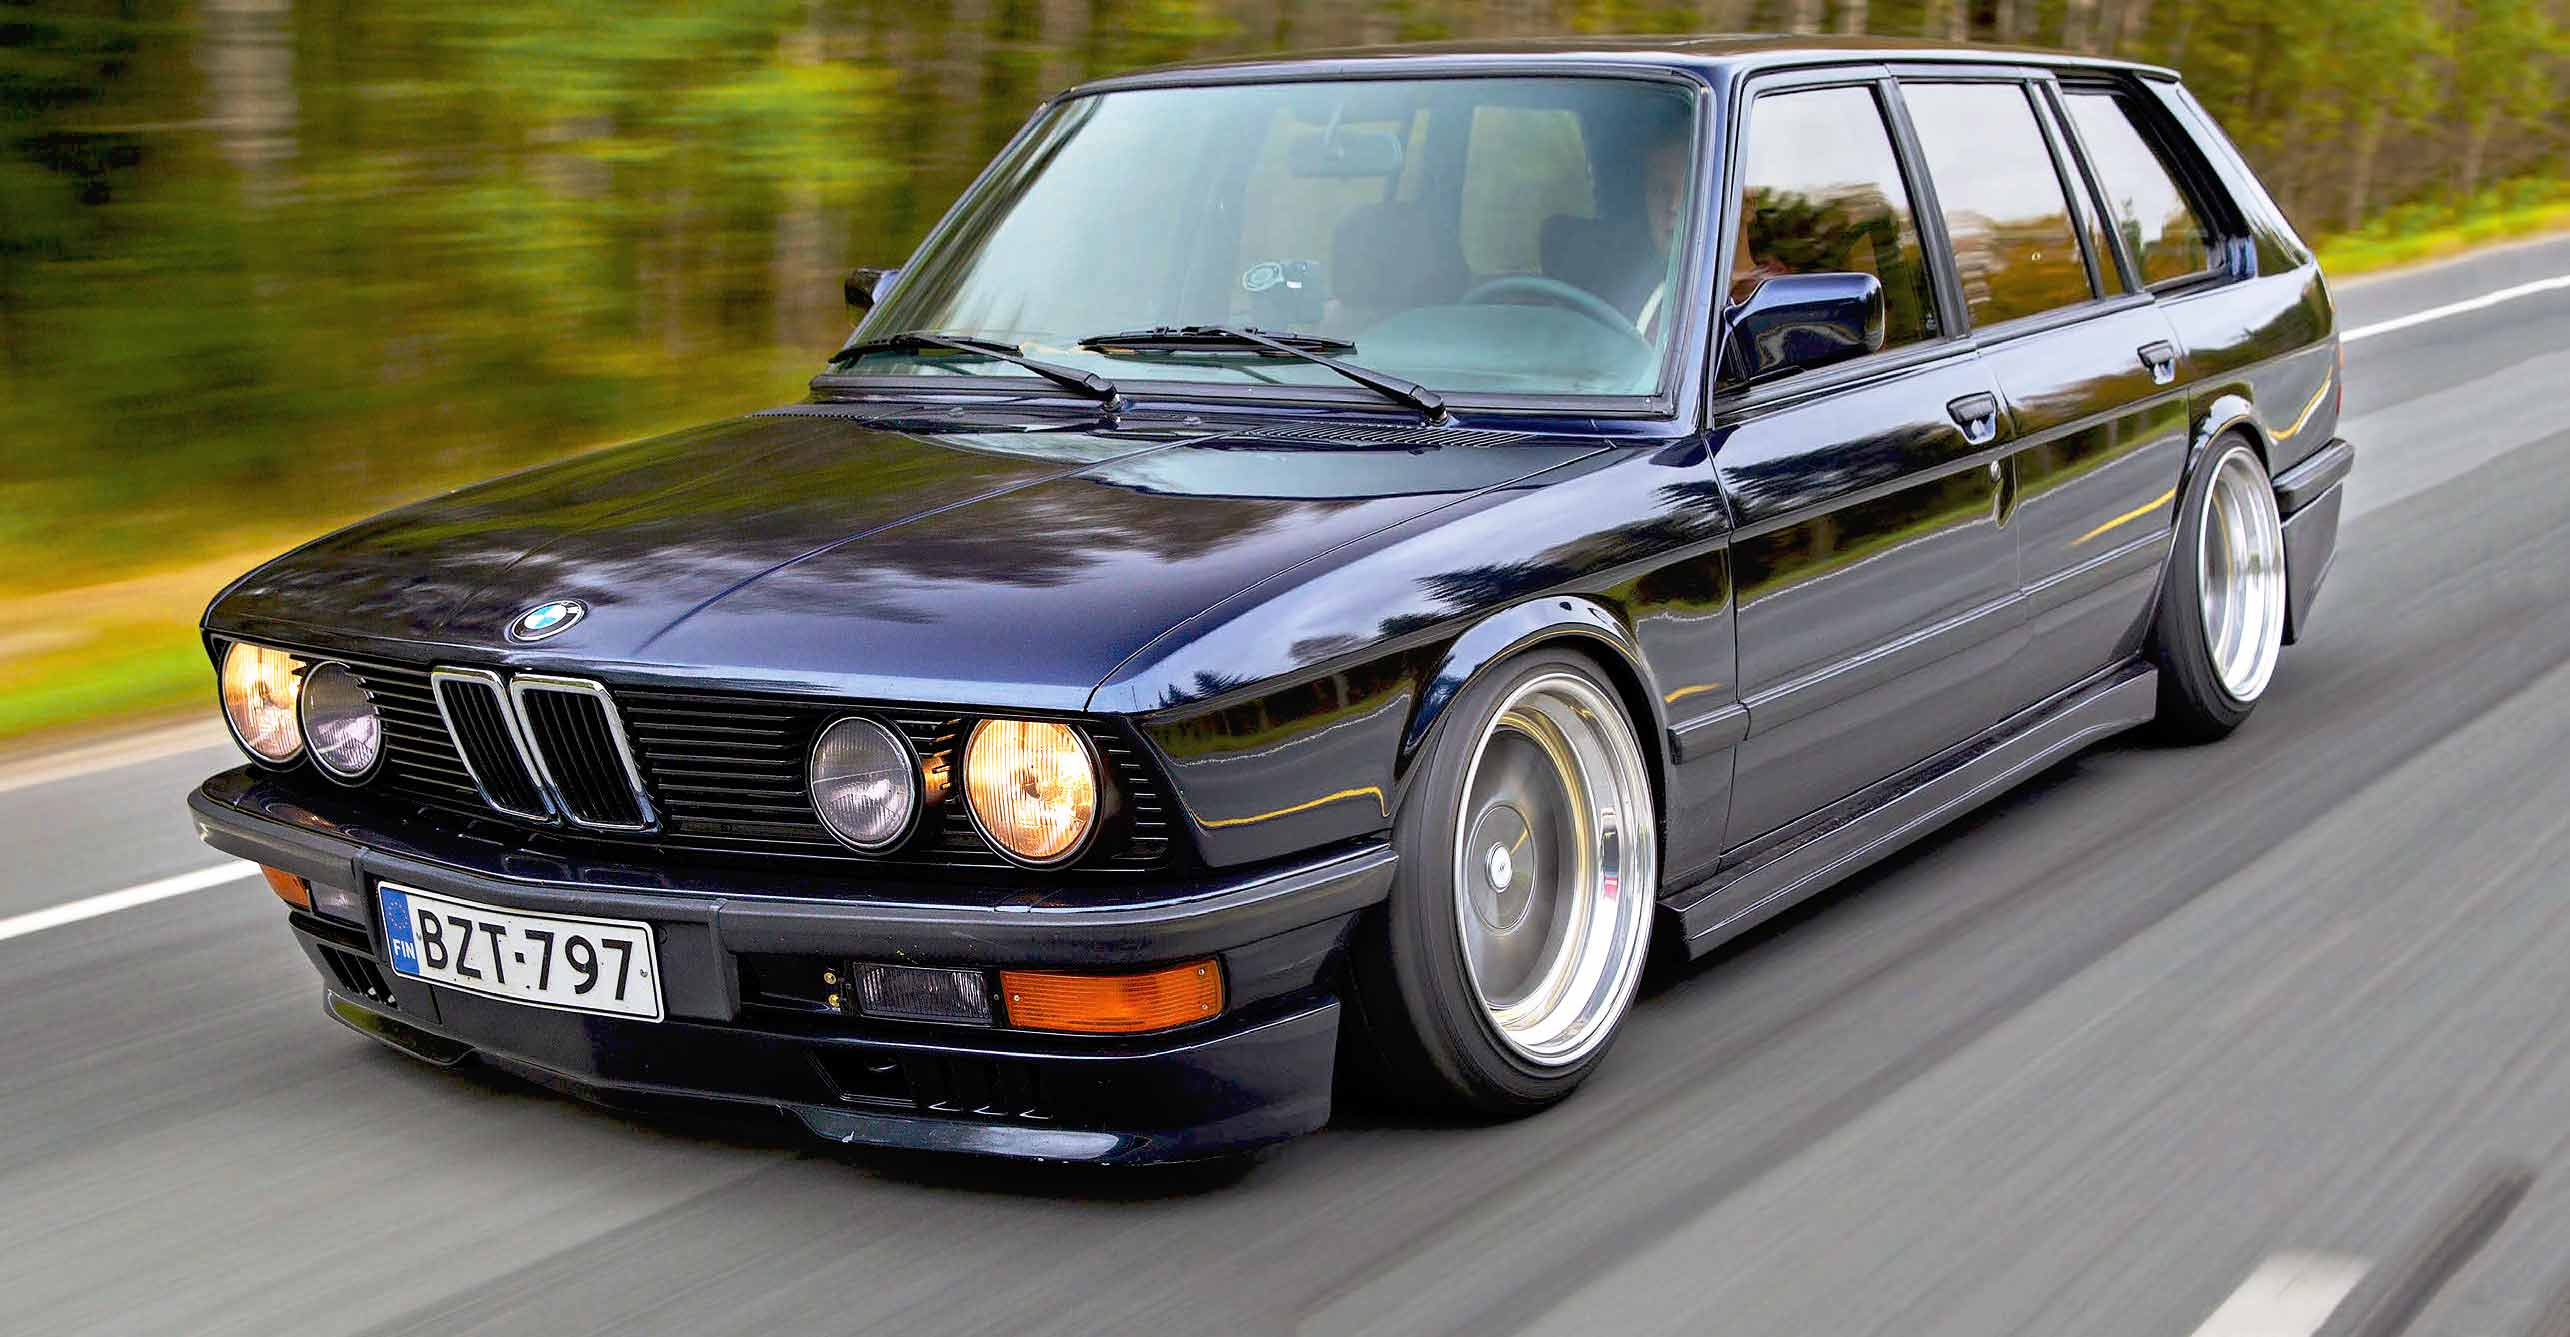 Ultra Rare Bmw 535i Touring E28 Drive My Blogs Drive